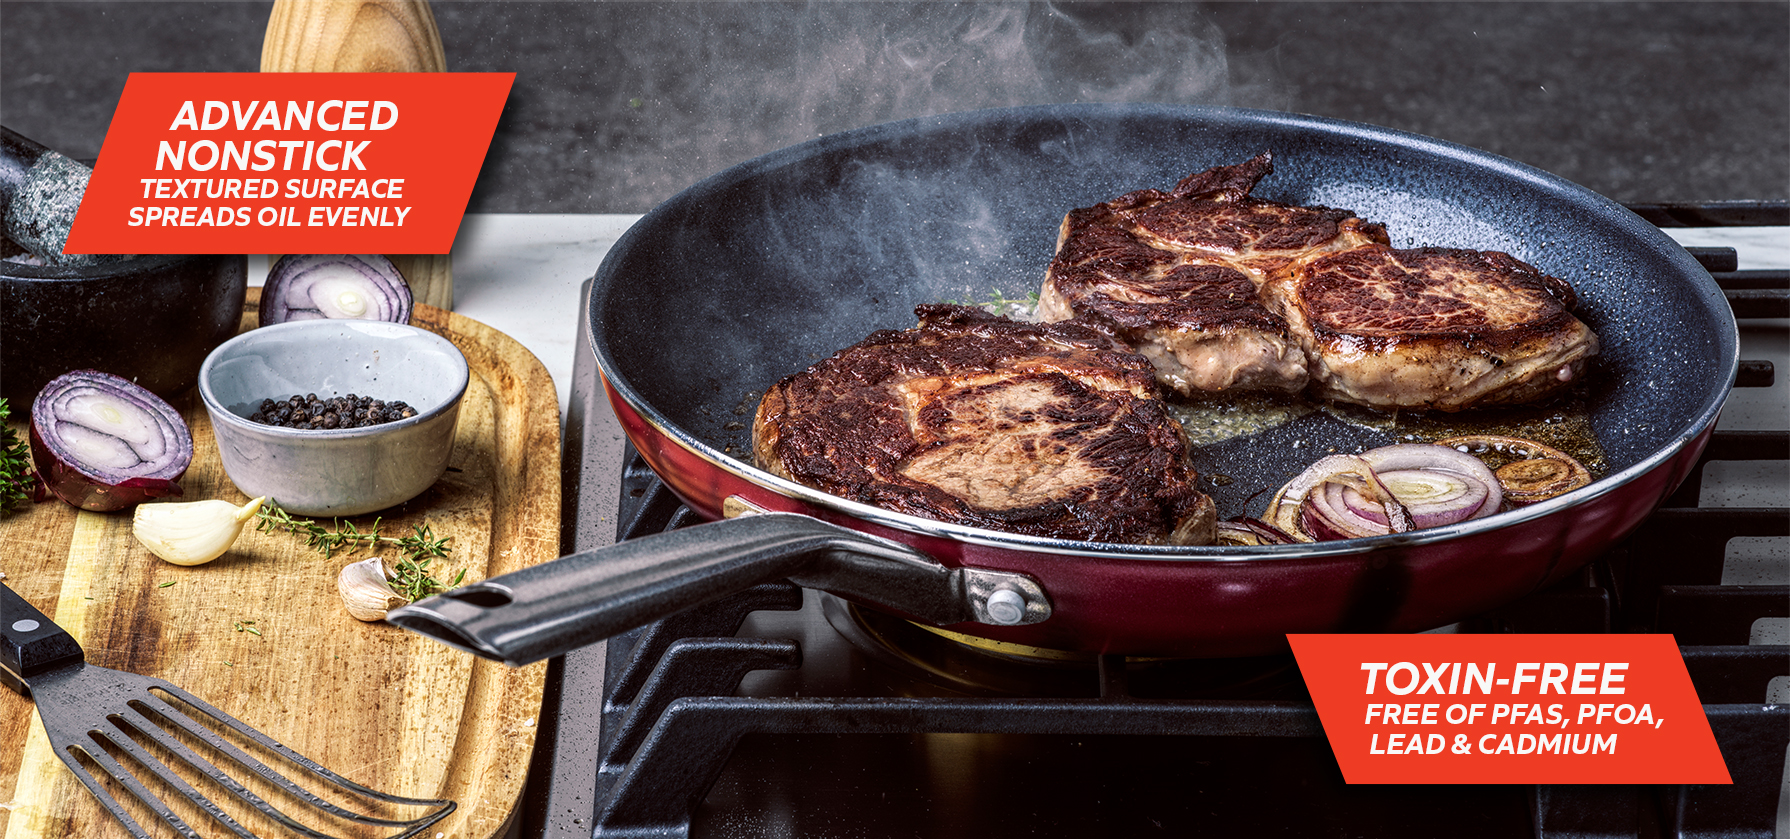 Red Volcano Toxin-Free & Non-stick Pan by the Cookware Company